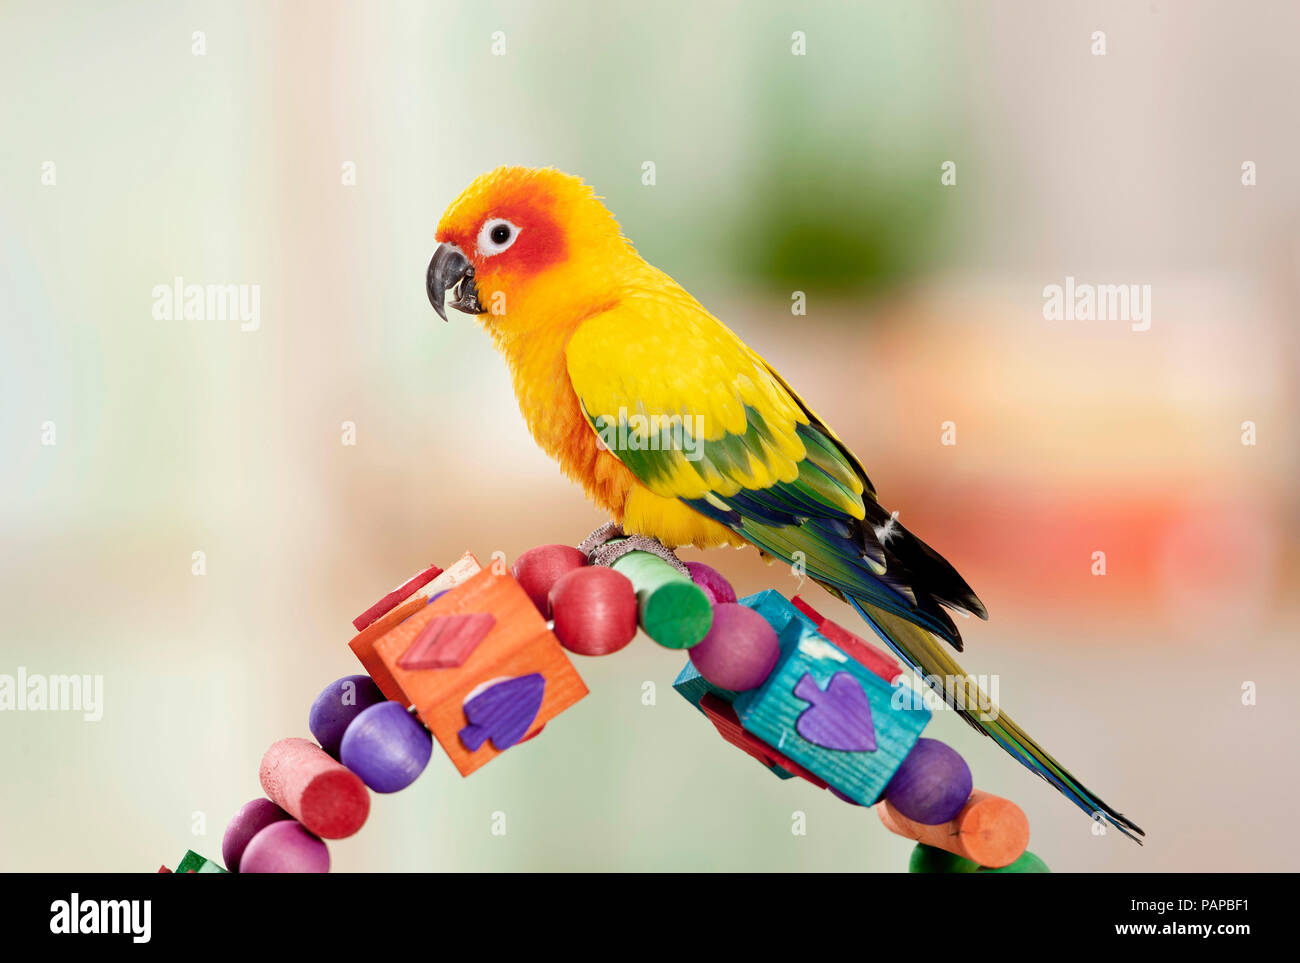 Sun Conure (Aratinga solstitialis). Adult standing on a multicolored toy, studio picture. Germany - Stock Image